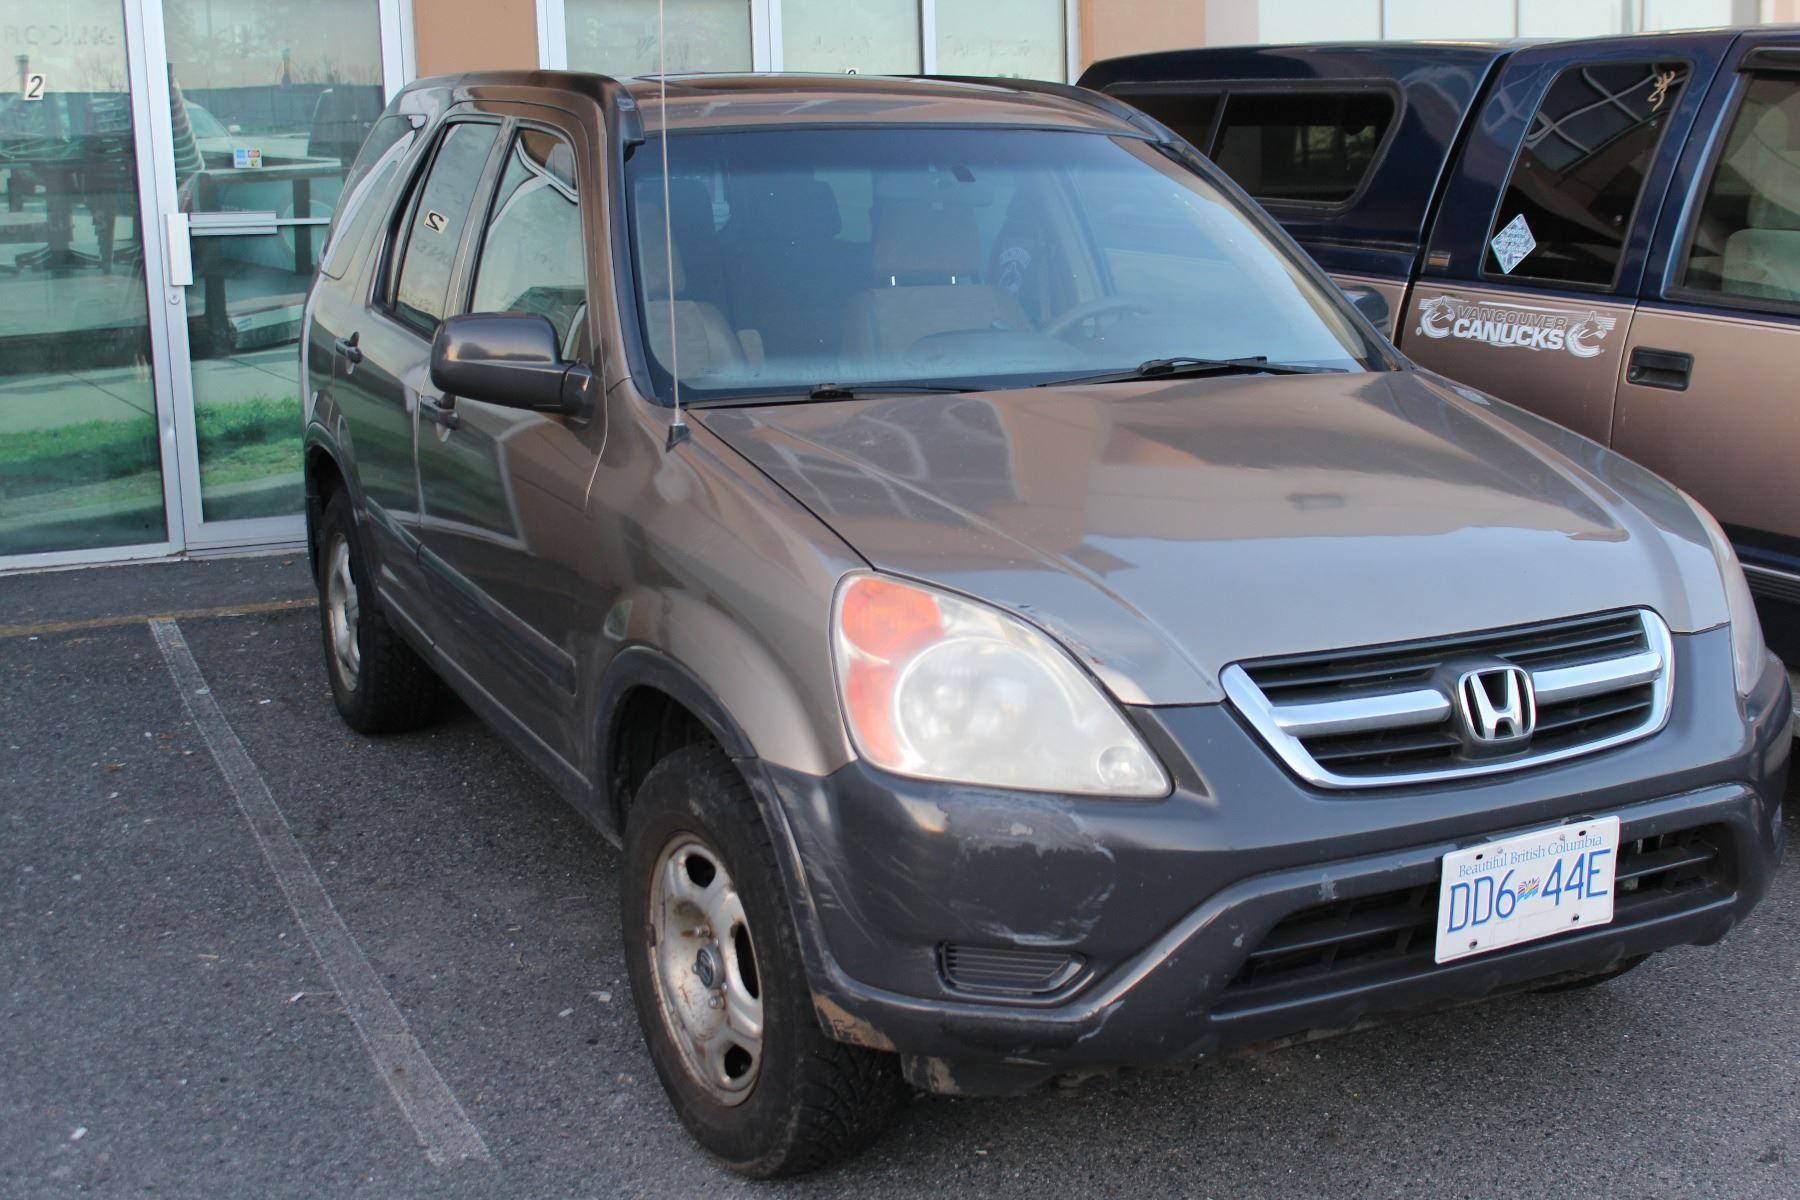 2003 Honda Crv 144000 Miles 2wd Automatic With Keys And Registration Cr V Image 1 4